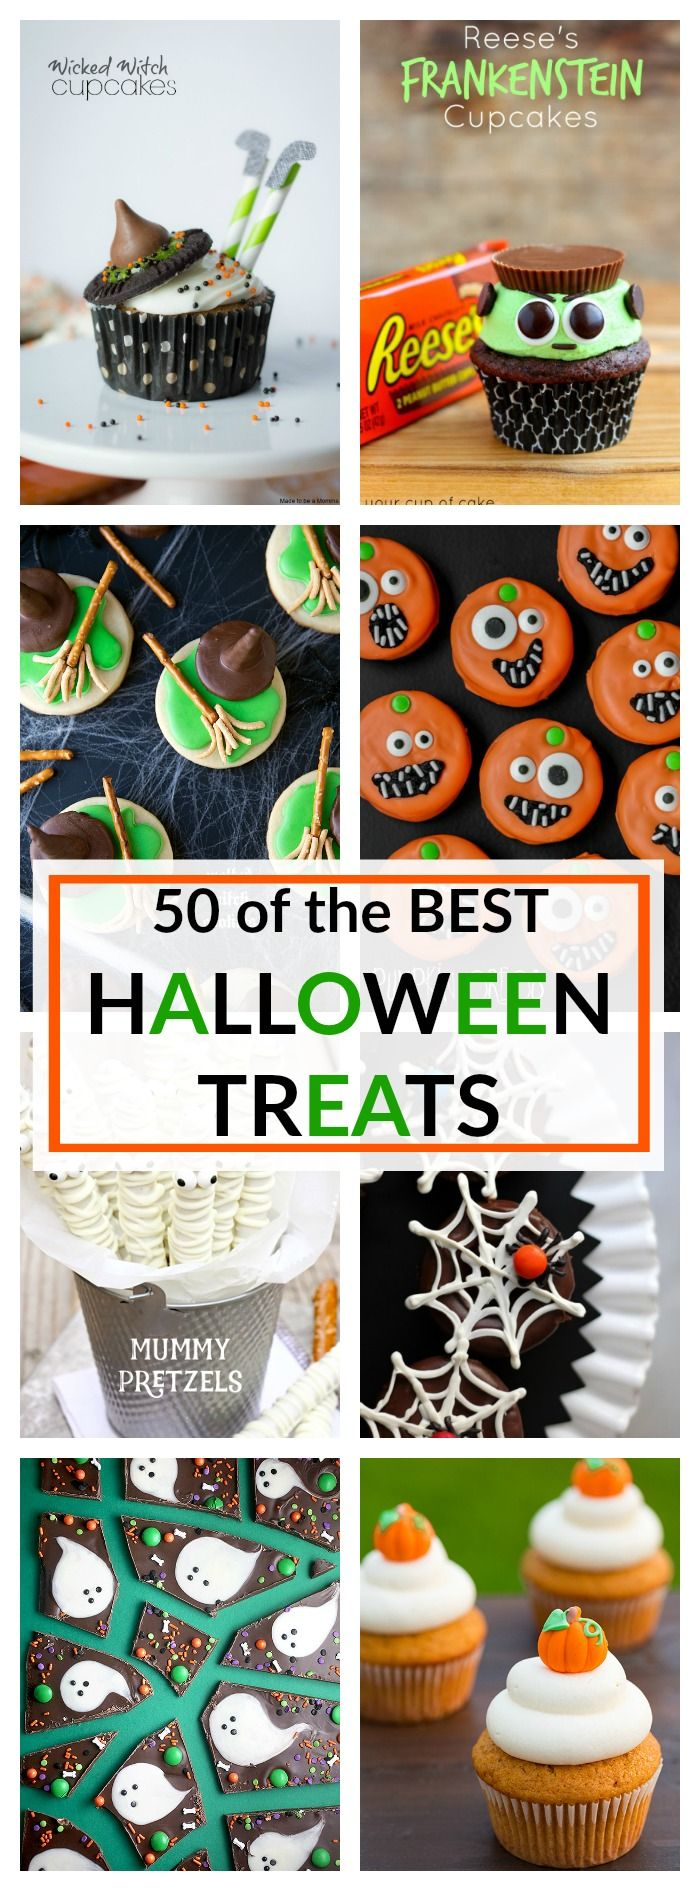 50 of the BEST Halloween Treats | Halloween party, Information ...